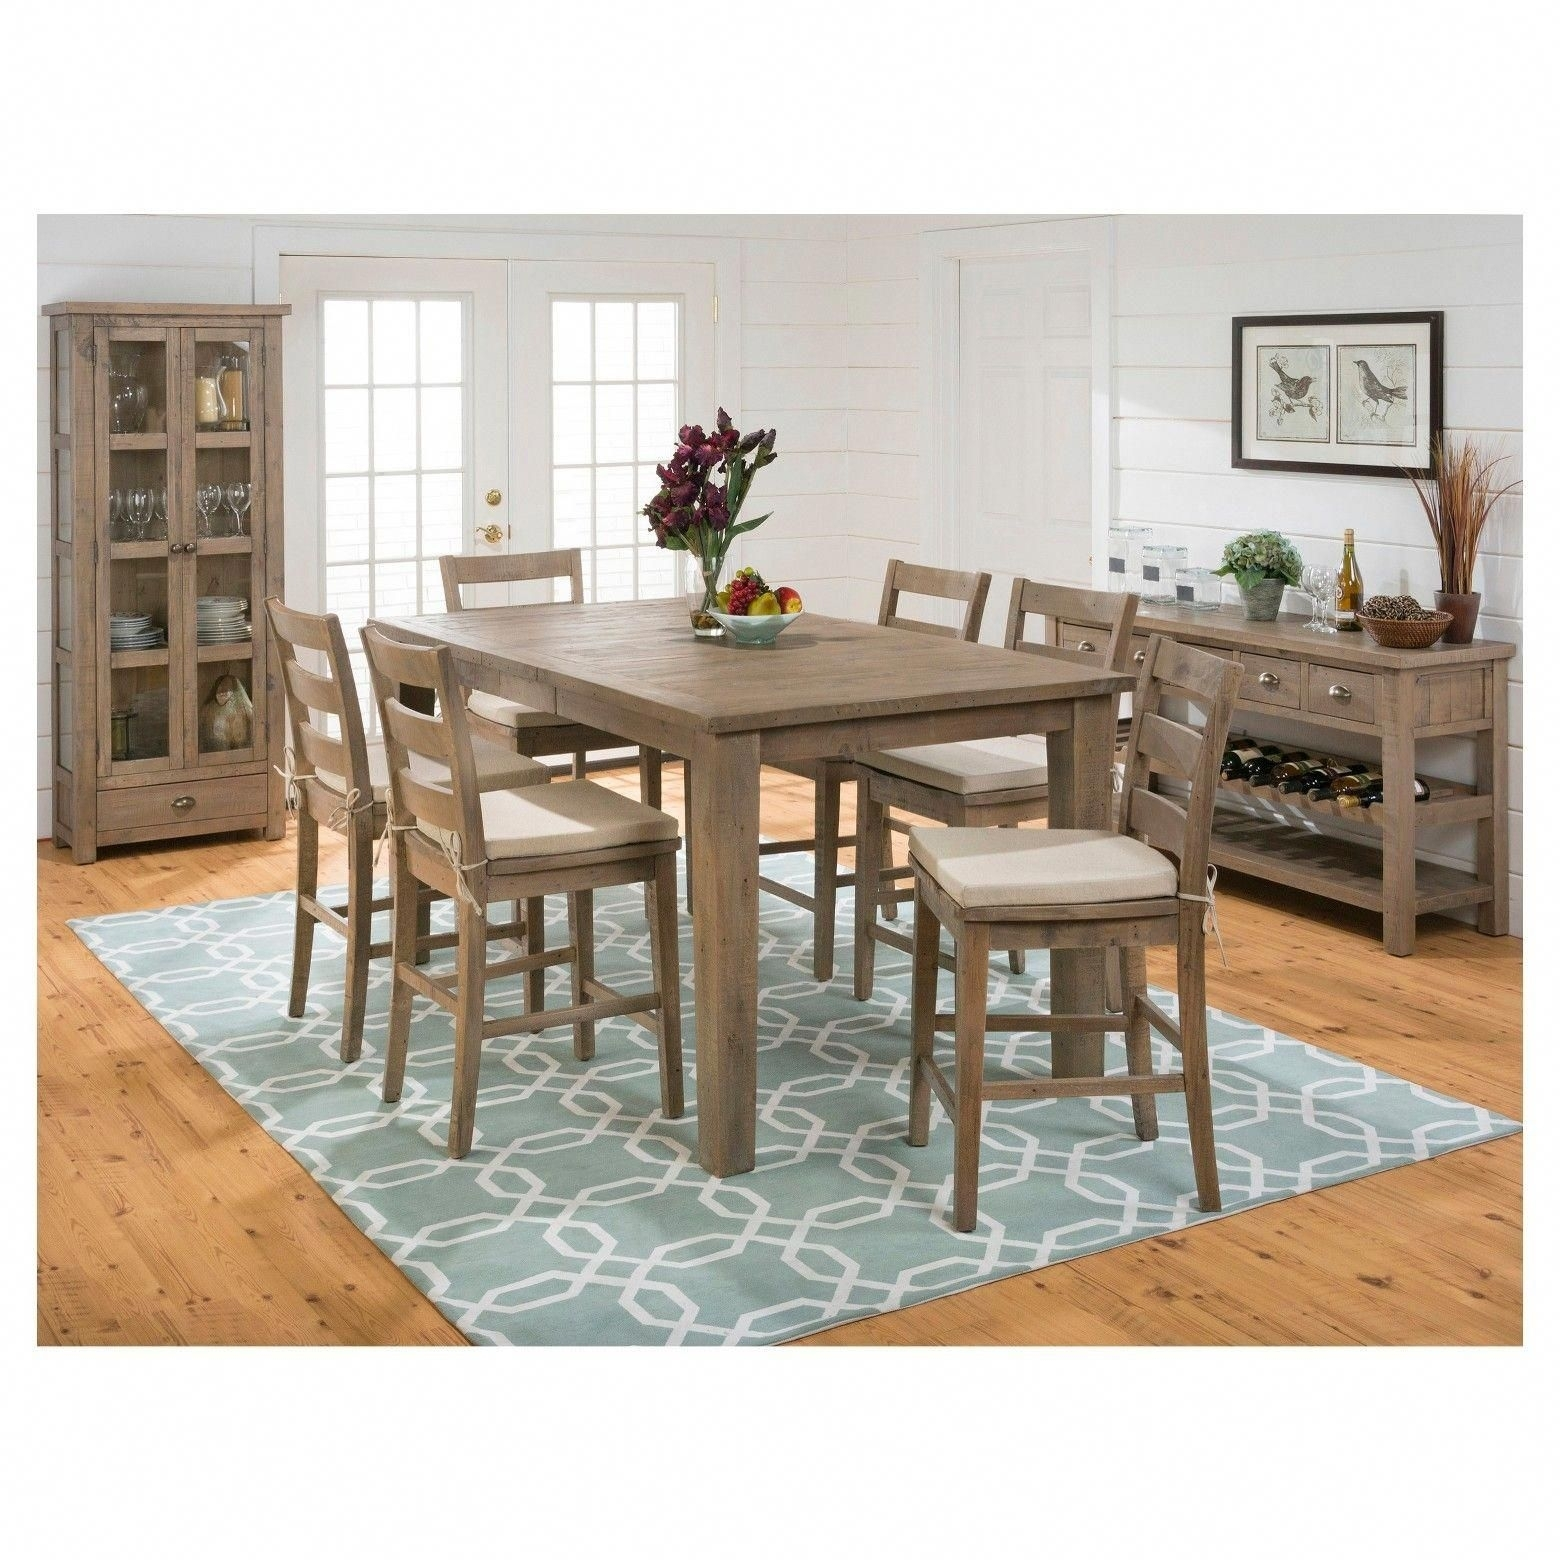 Combining Casual Cottage Design With On Trend Distressing, Jofran's With Regard To Current Craftsman 9 Piece Extension Dining Sets With Uph Side Chairs (Image 7 of 20)